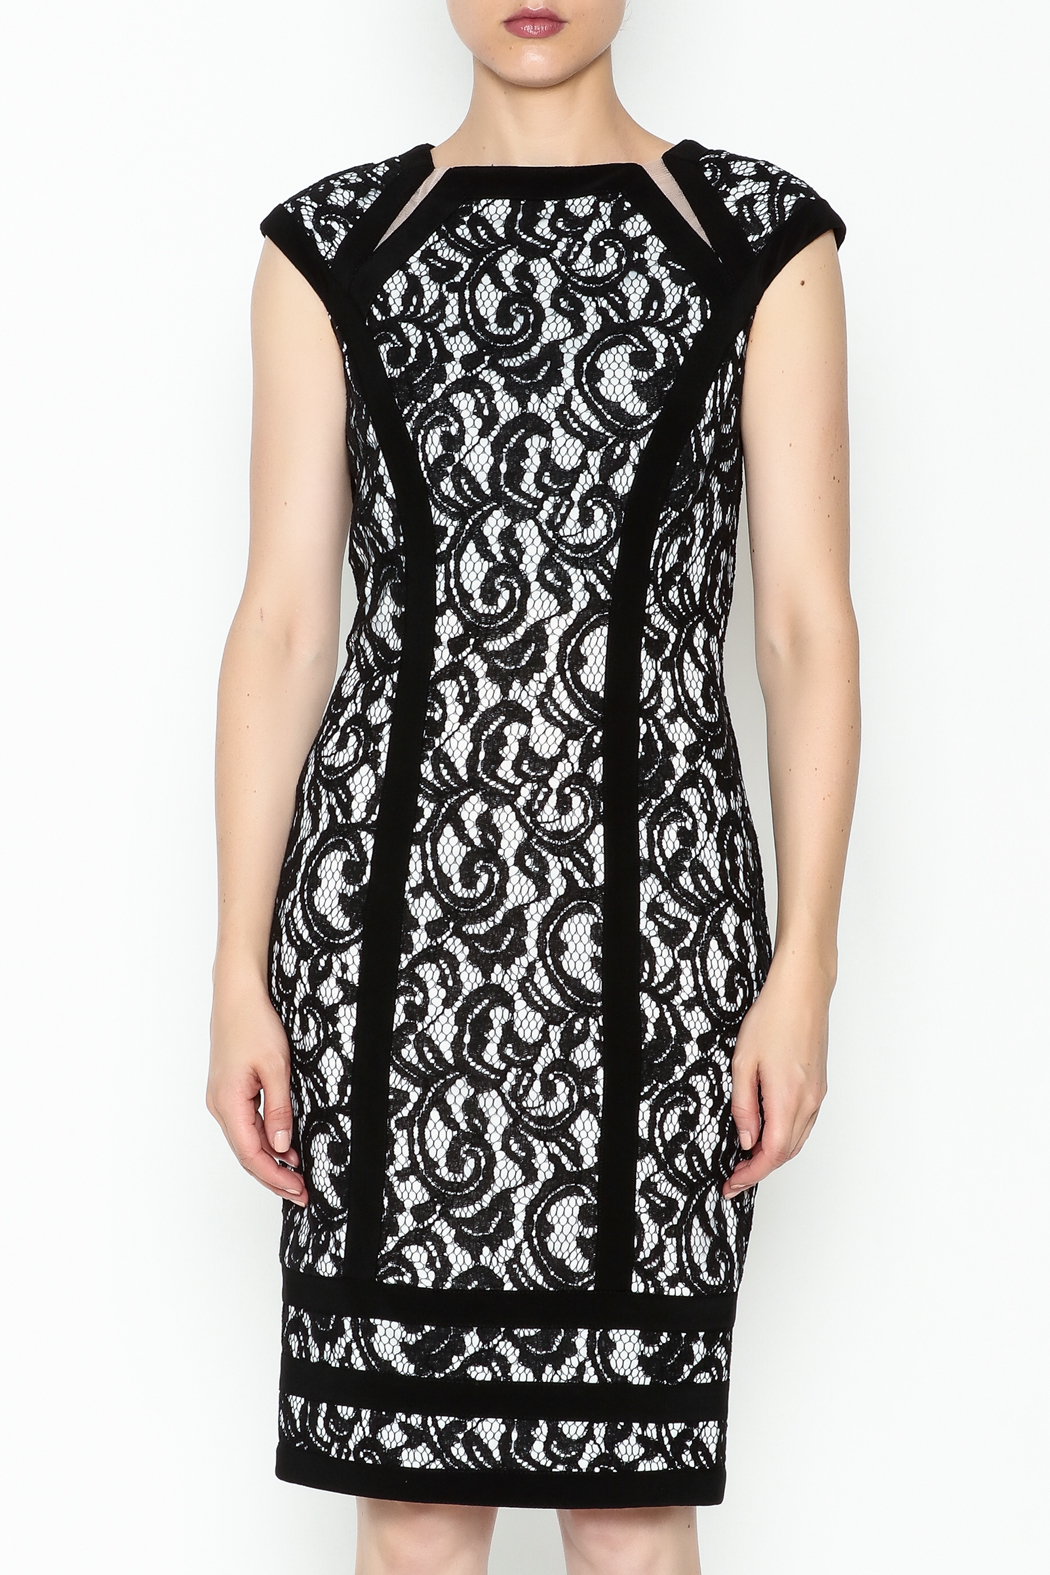 Joseph Ribkoff Lace Overlay Dress - Front Full Image